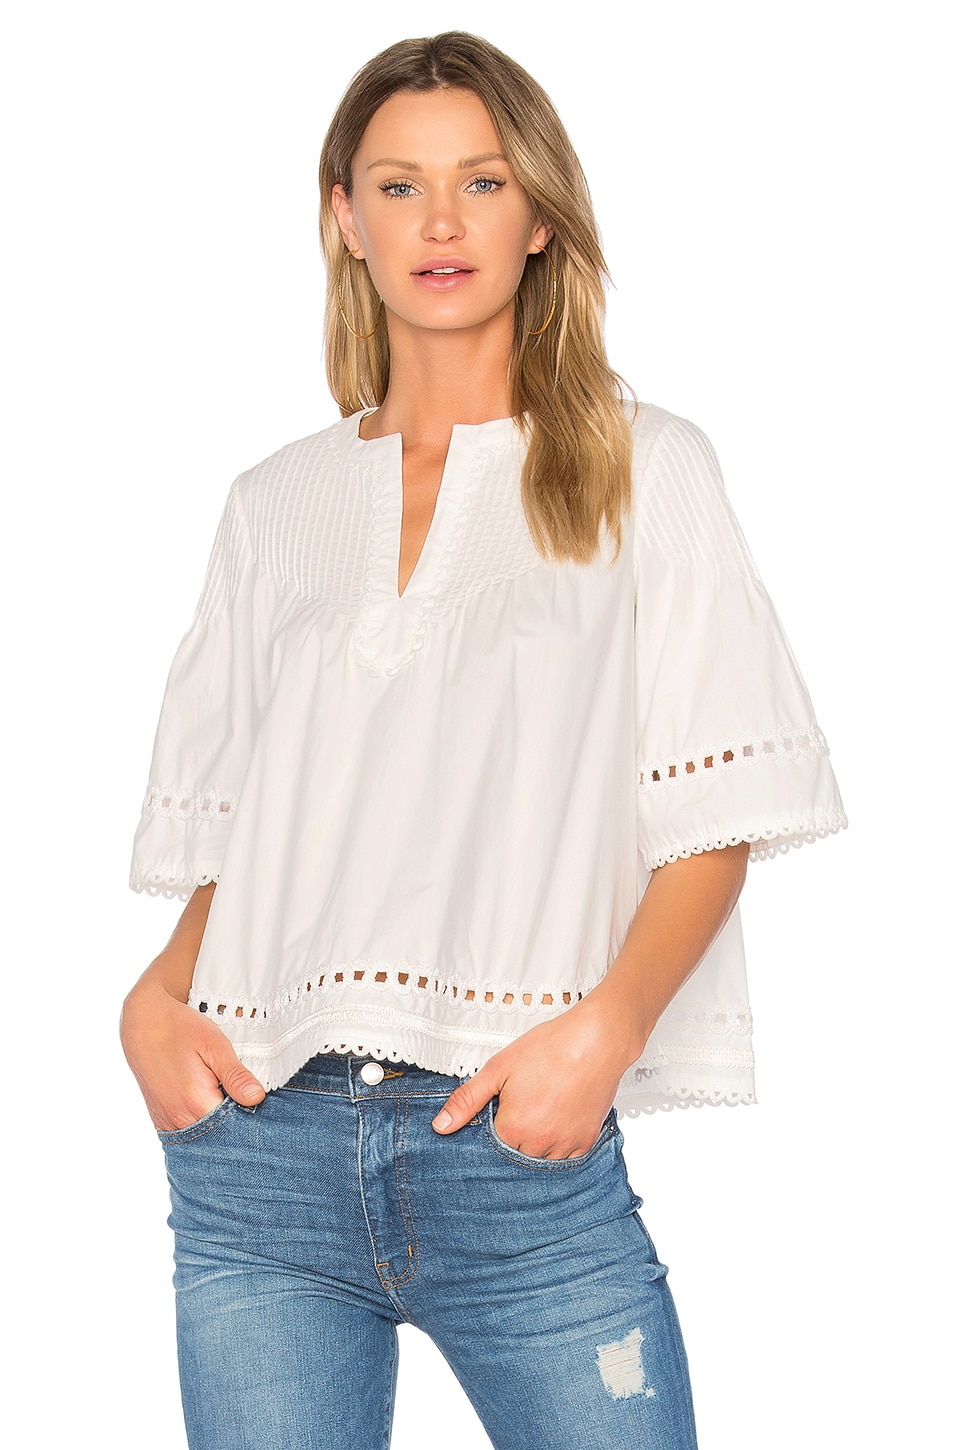 Pintuck Top by DEREK LAM 10 CROSBY